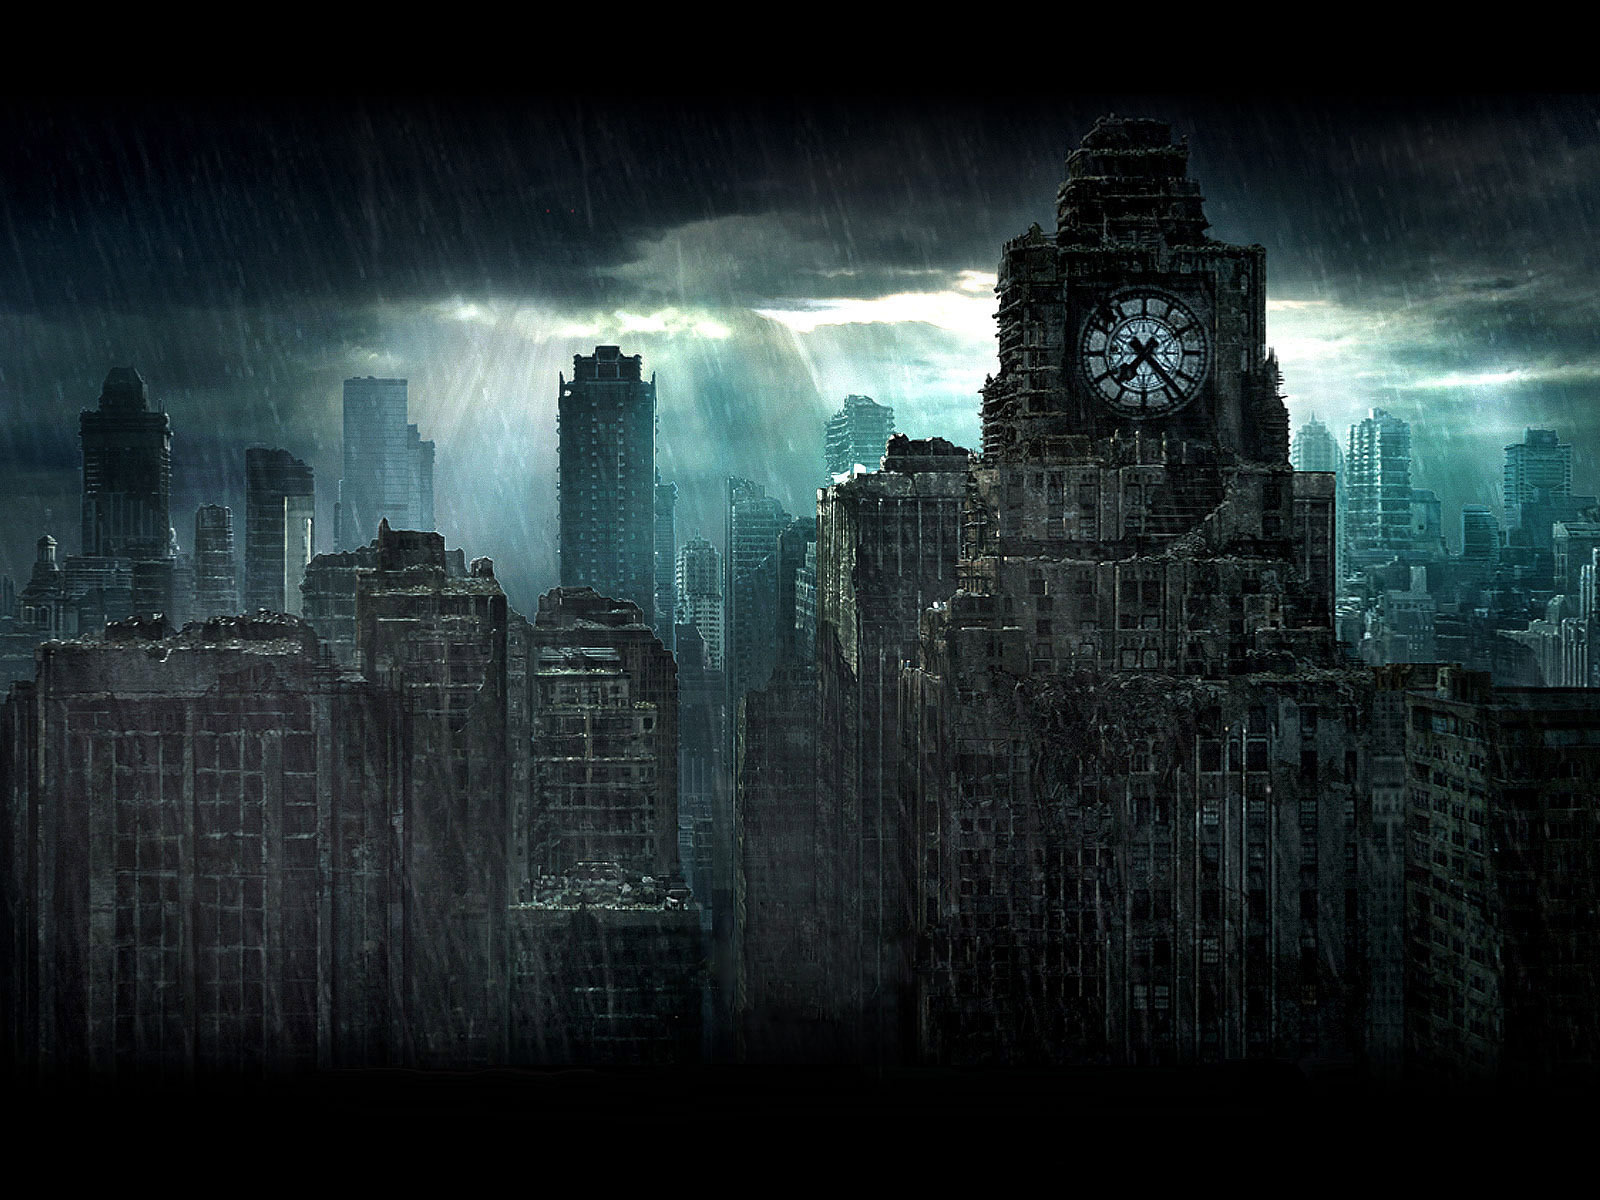 Rain in a destroyed city wallpapers and images   wallpapers pictures 1600x1200